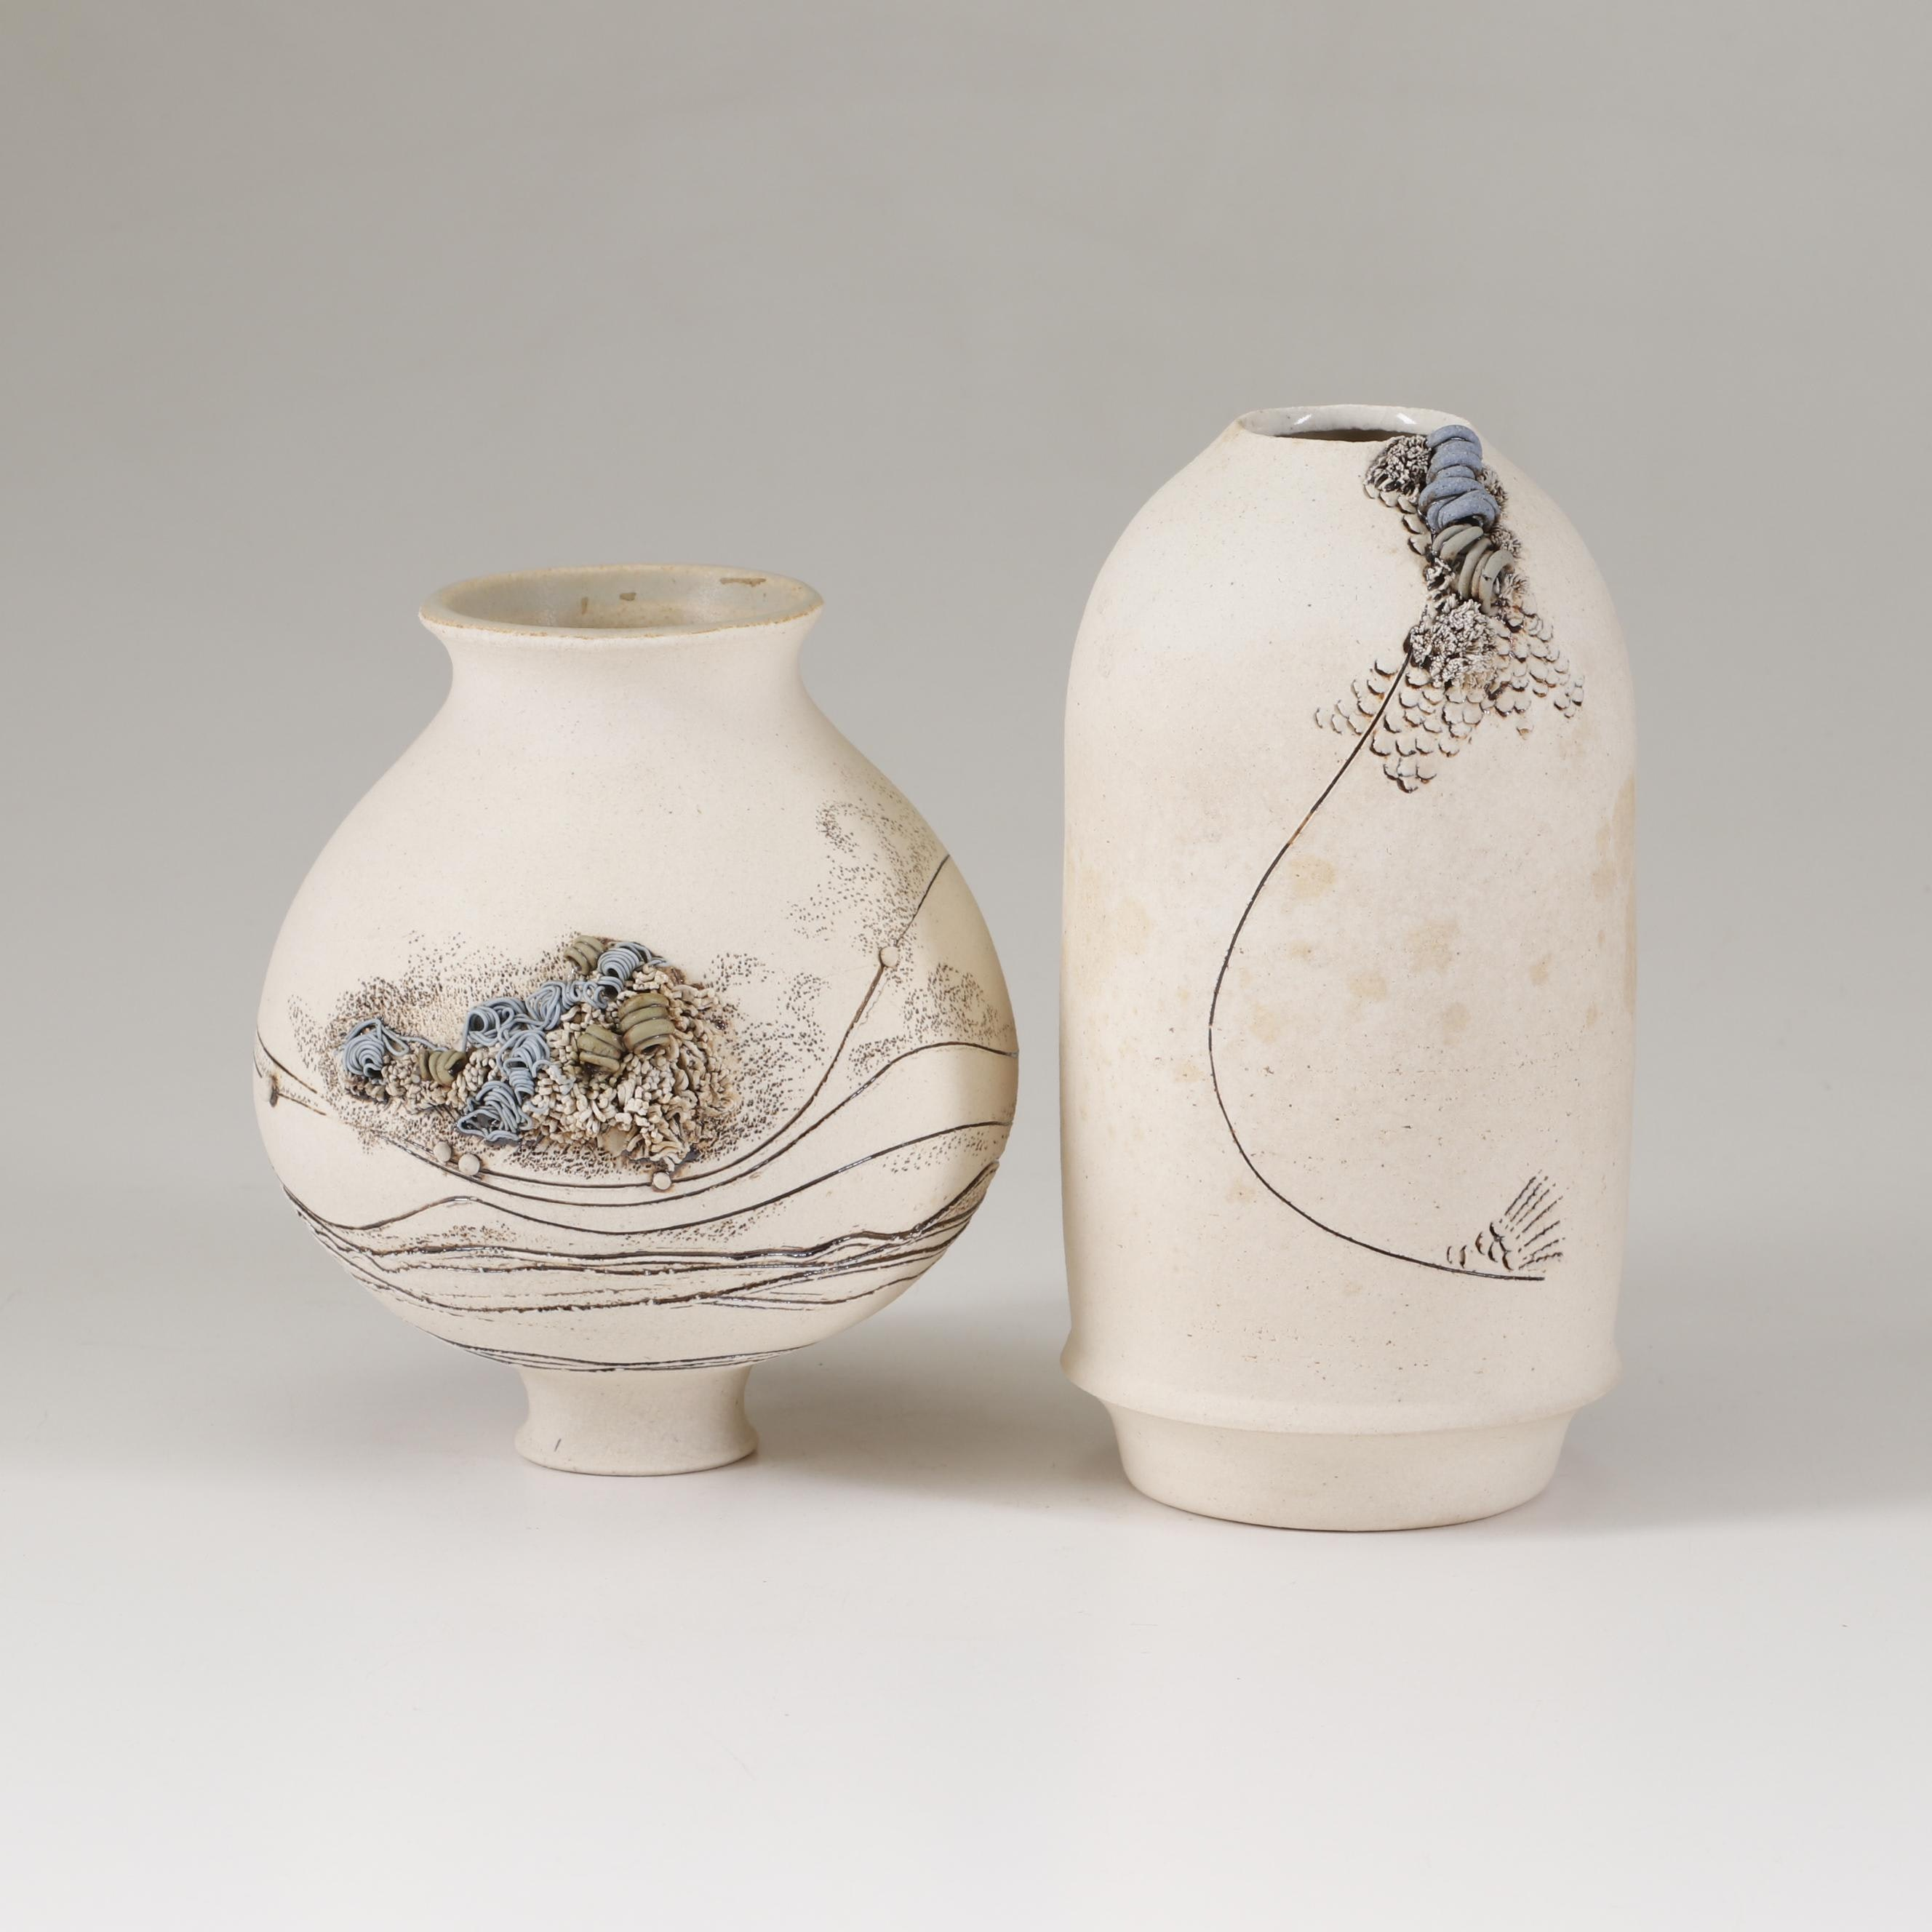 Thrown White Stoneware Vases with Applied Decoration